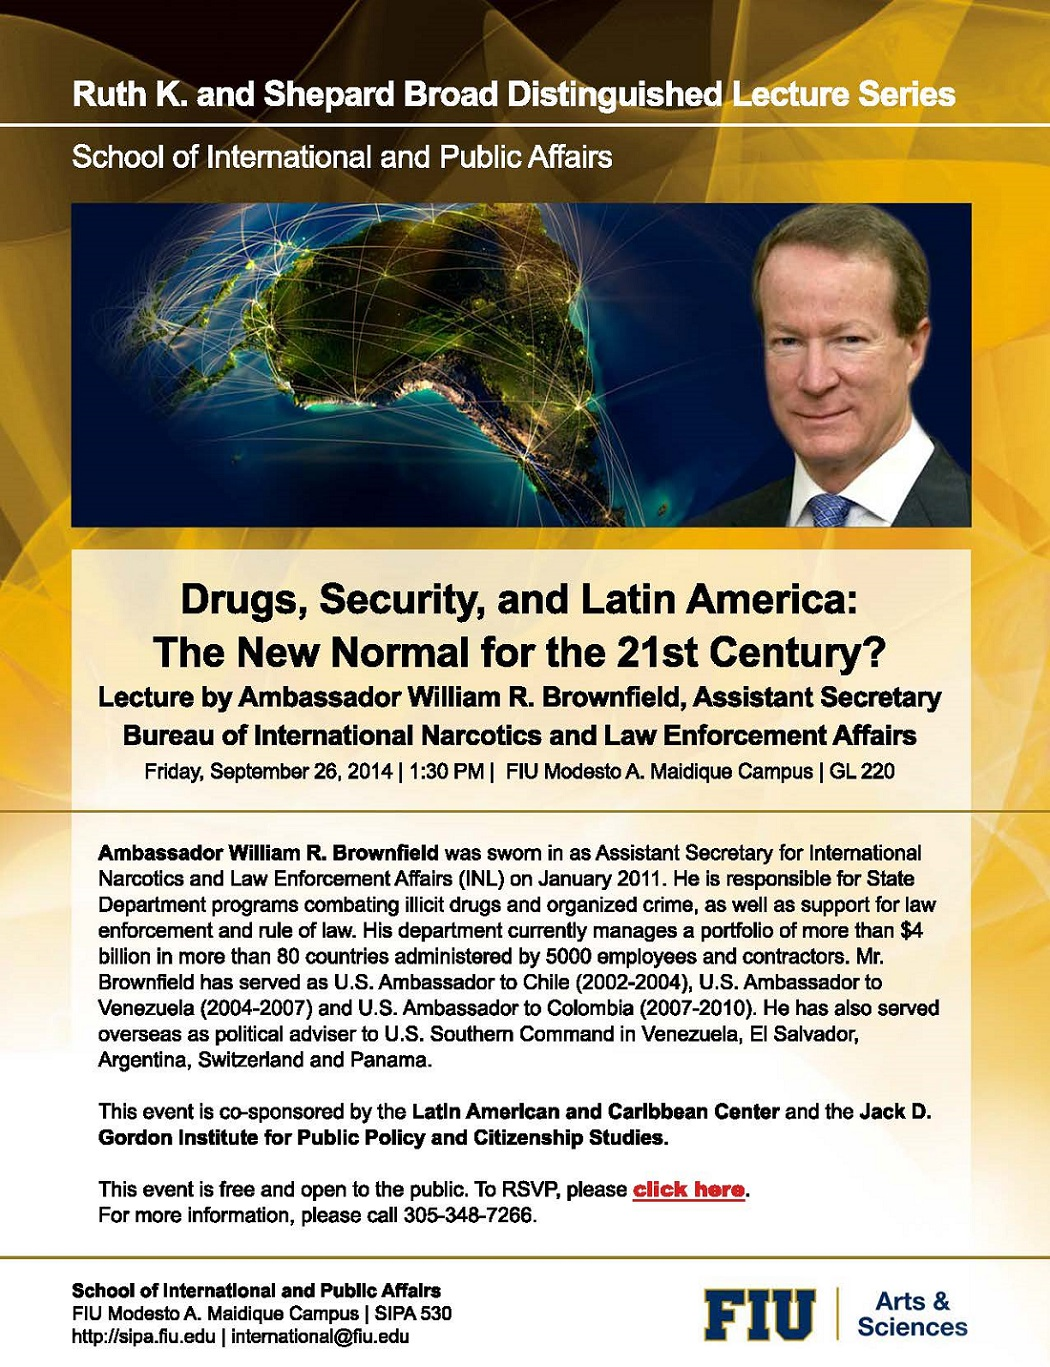 Drugs, Security, and Latin America: The New Normal for the